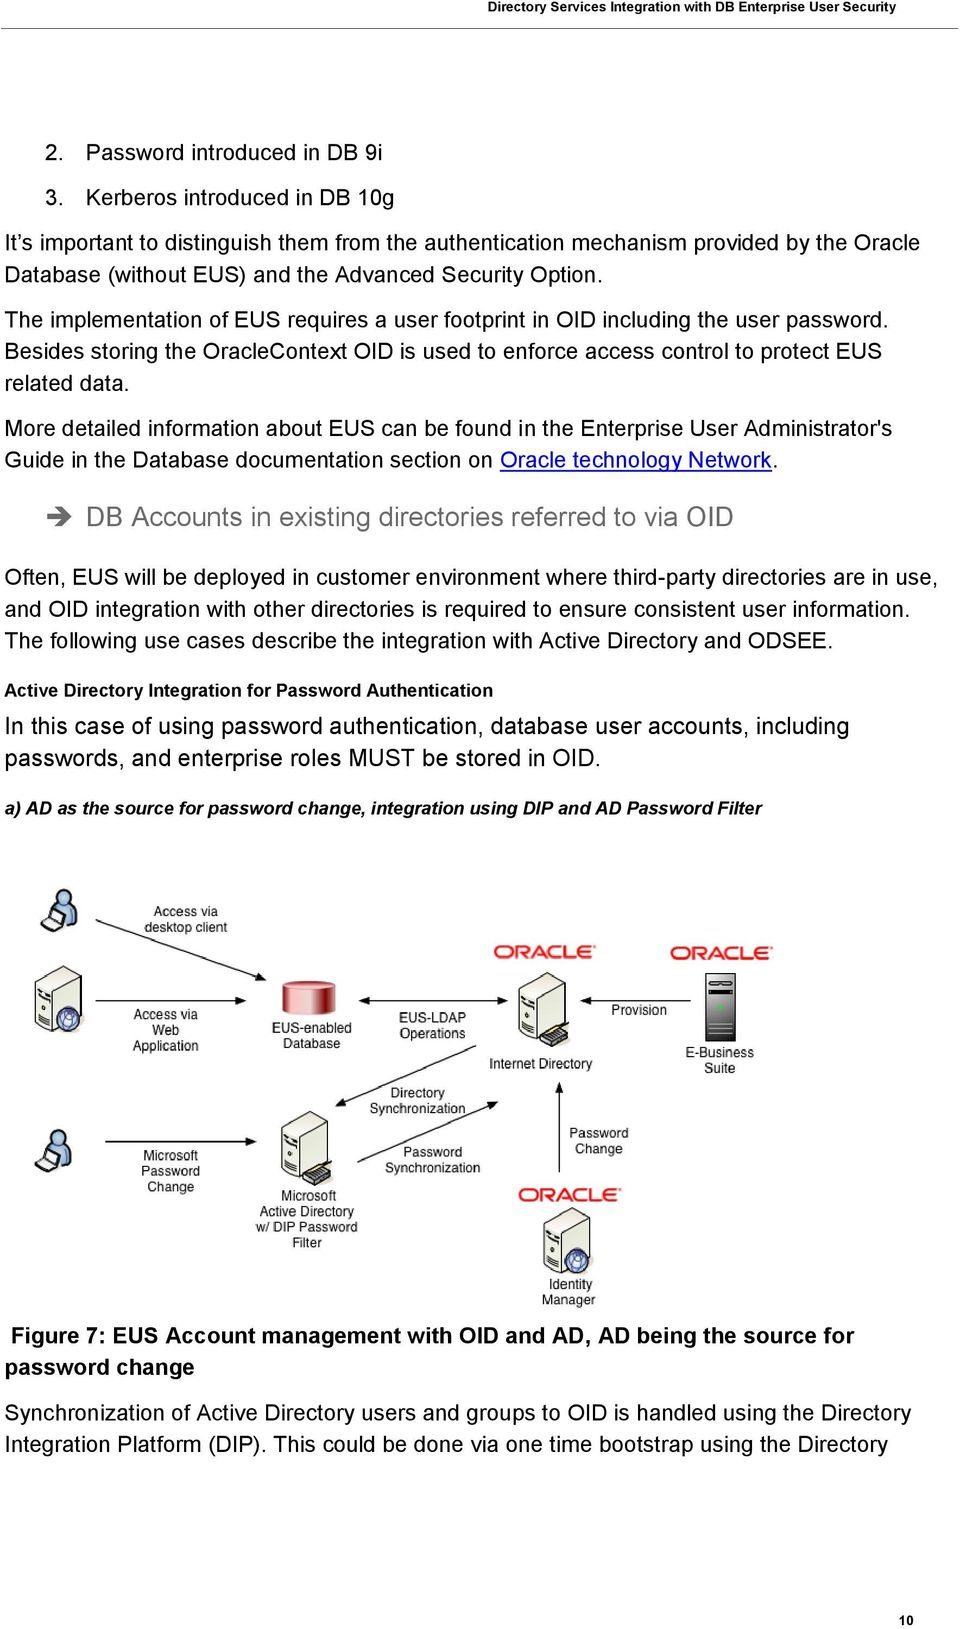 The implementation of EUS requires a user footprint in OID including the user password. Besides storing the OracleContext OID is used to enforce access control to protect EUS related data.